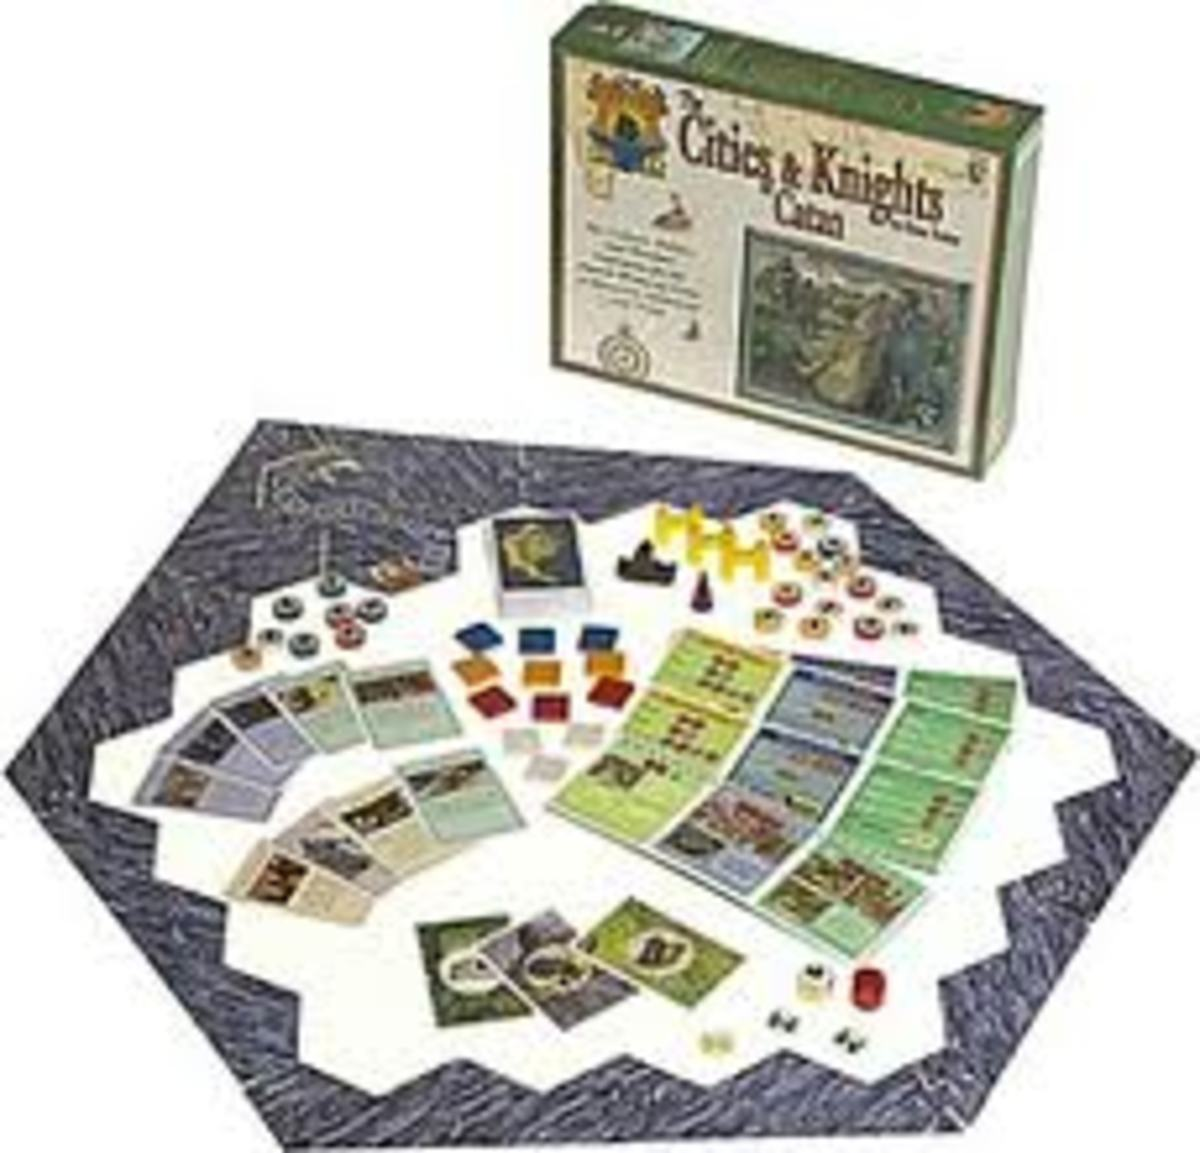 Box contents for Cities and Knights.